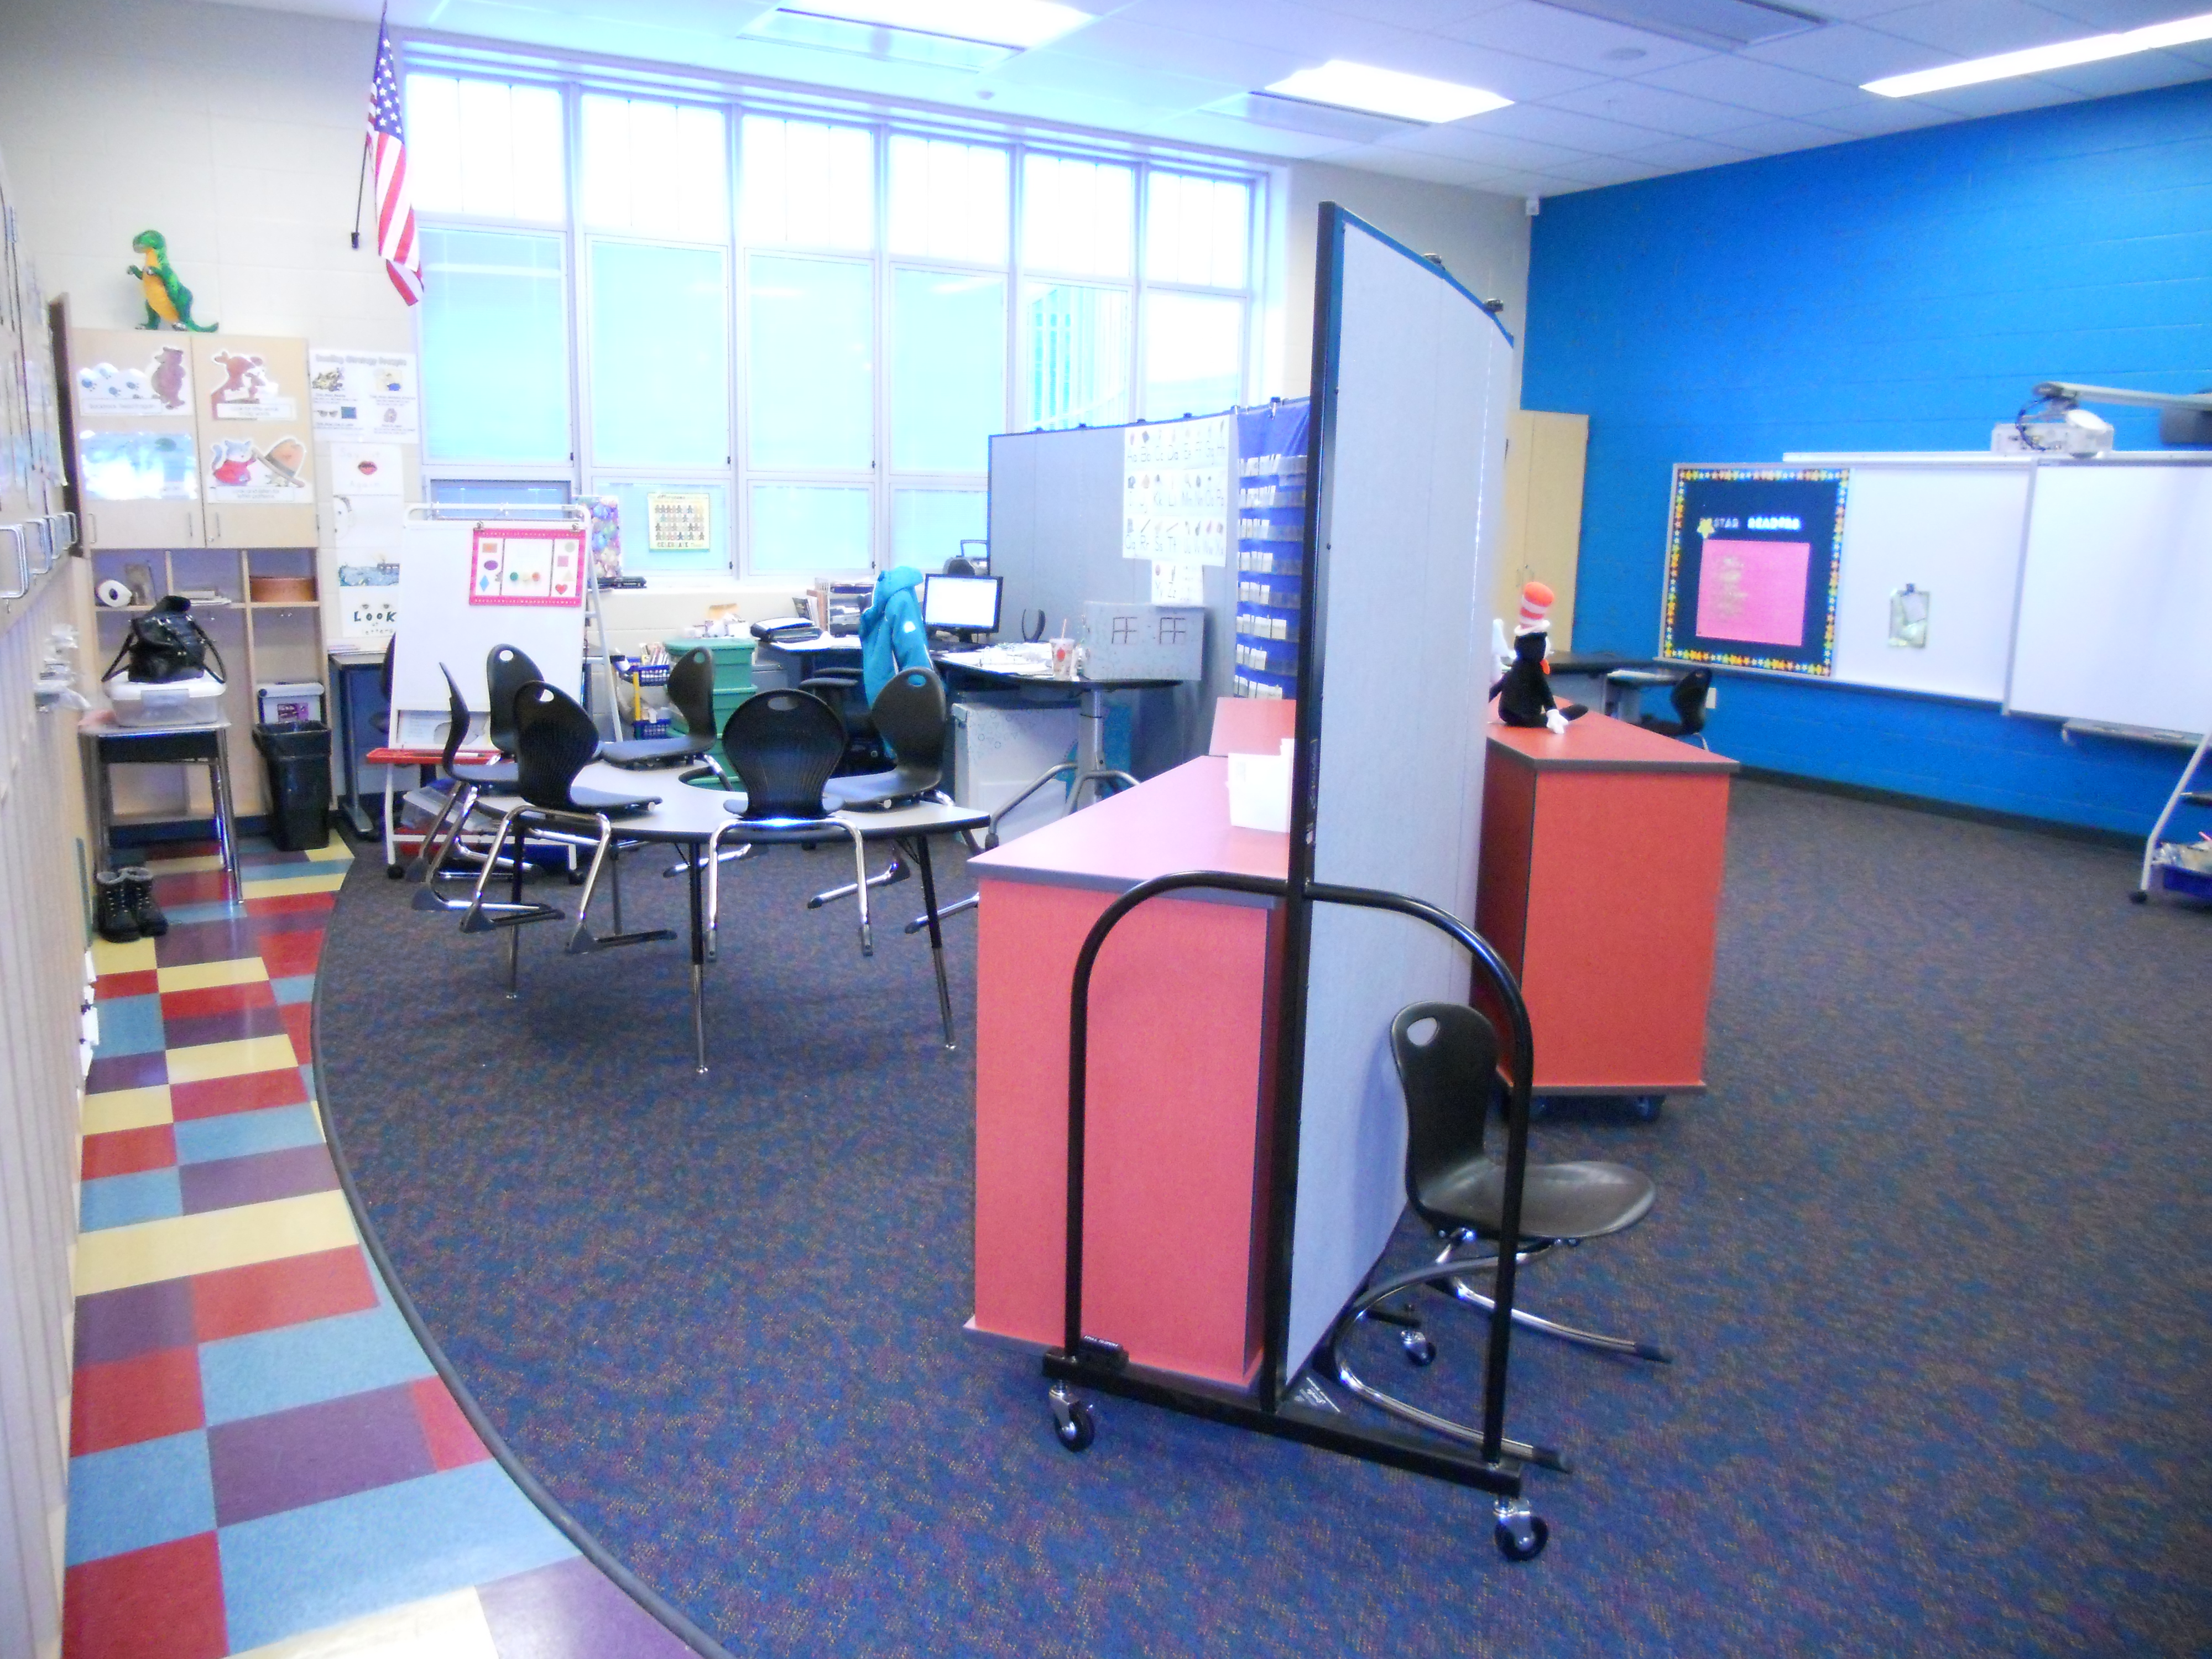 Classroom divided into two instructional areas with a Screenflex Room Divider